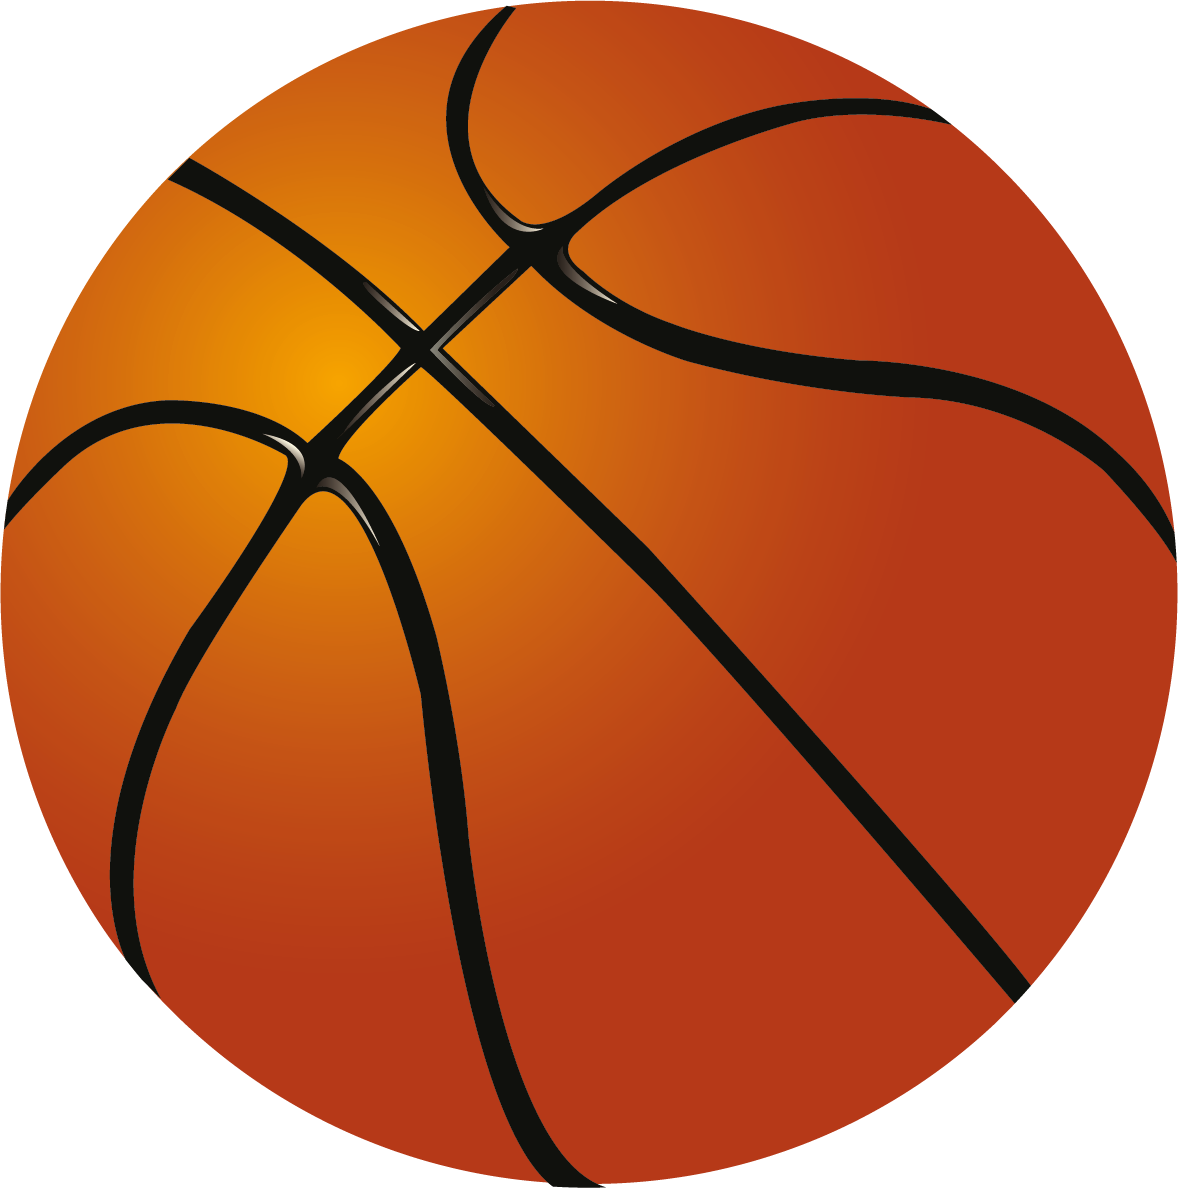 sports balls clipart at getdrawings com free for personal use rh getdrawings com